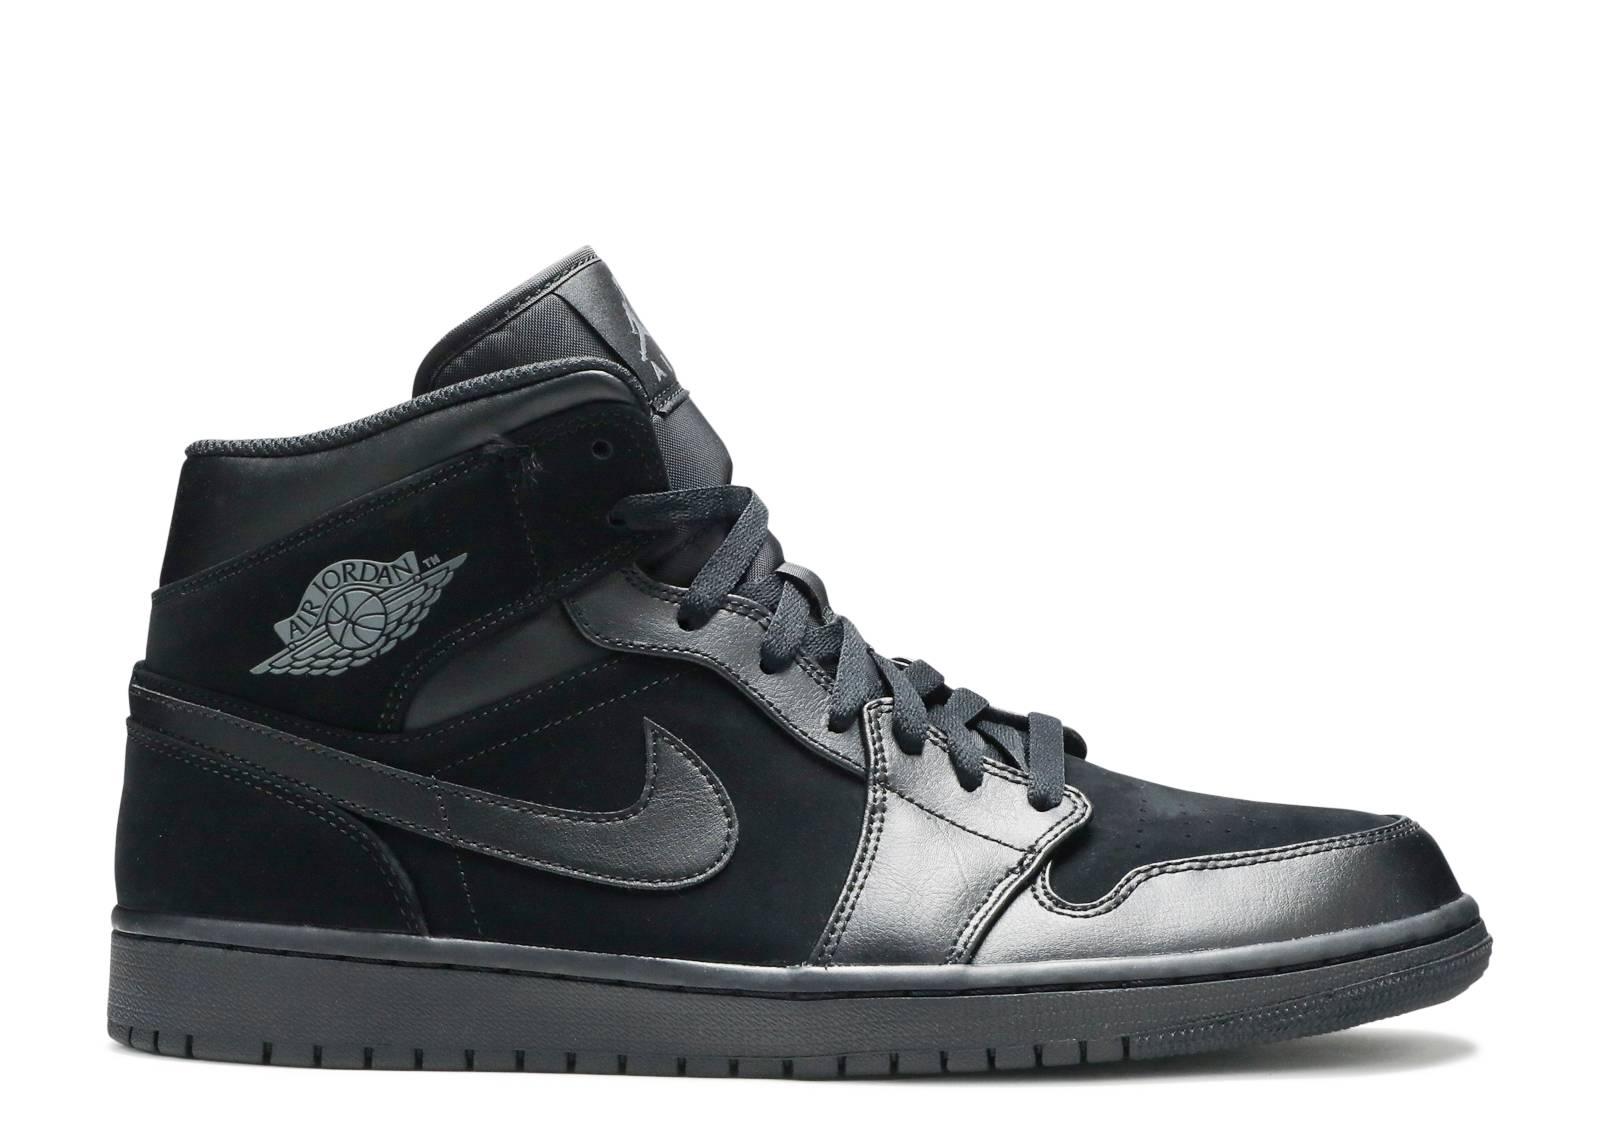 new arrive 7f00d 77573 air jordan 1 mid